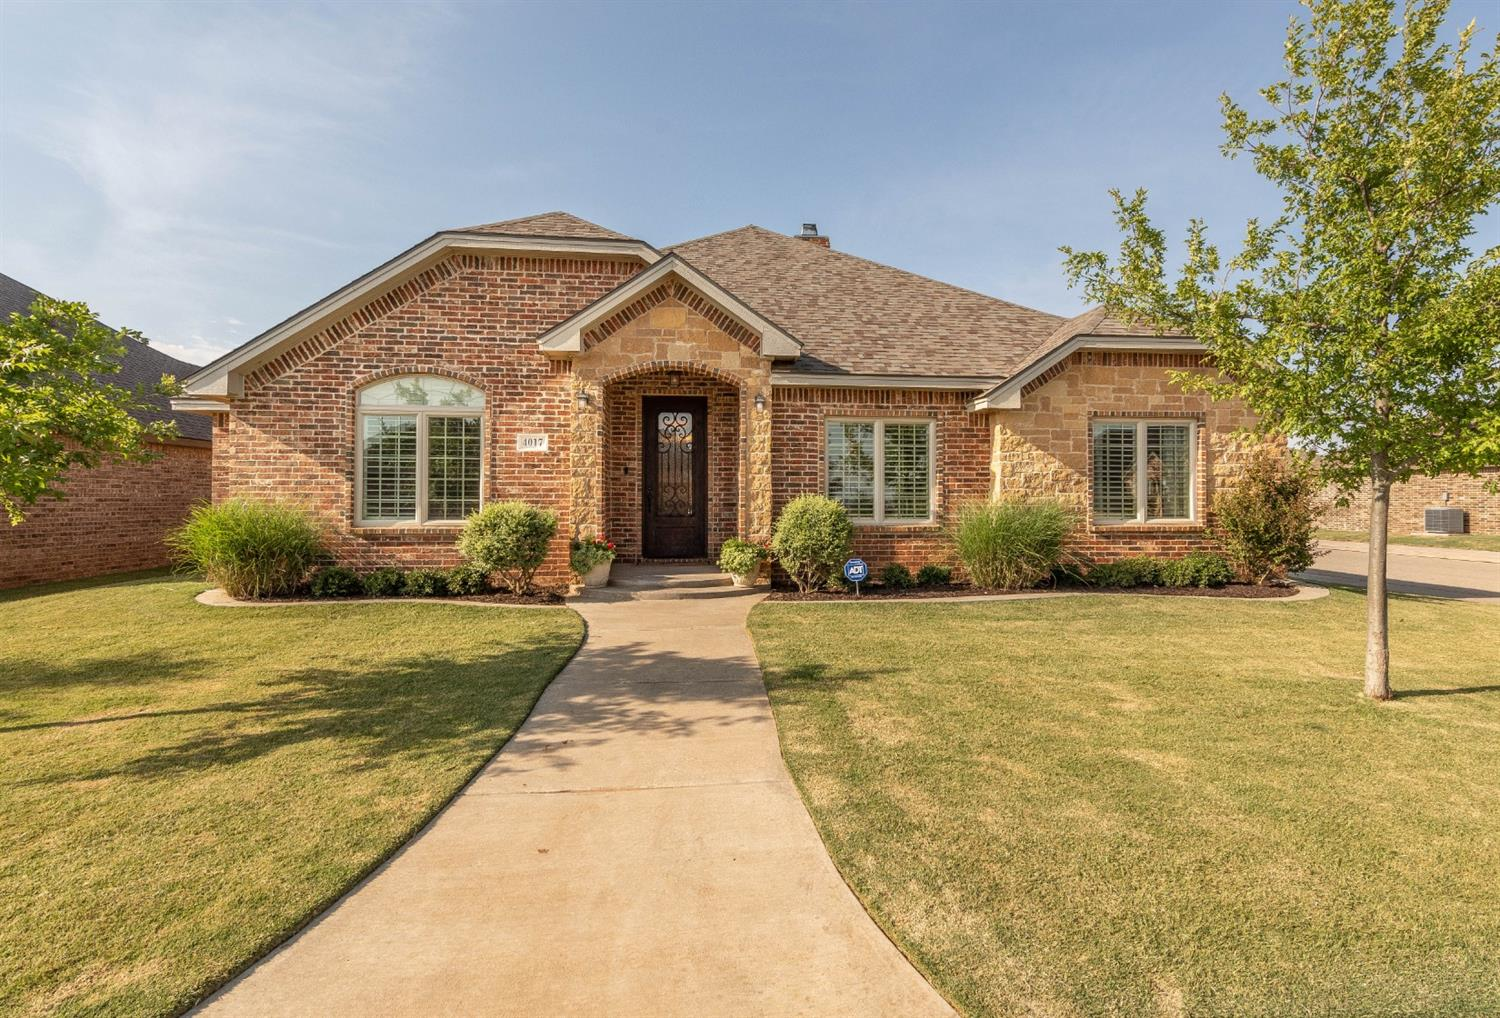 This Home Has Gorgeous Curb Appeal!  It Features A Very Striking Brick/Stone Front Combination, On A Corner Lot, & Beautifully Landscaped.  You Will Be Welcomed In The Large Entry Way Featuring Special Accent Flooring.  It Has A Spacious & Open Floor Plan W/ A Large Living Area, Stately Fireplace W/ Handsome Built-Ins On Each Side; Spacious & Convenient Dining Area; And A Cook's Dream Kitchen W/ Rich Cabinetry Highlighted W/ Gorgeous Granite, Gas Cook Top, & A Wonderful Island W/ Breakfast Bar.  Relaxing Isolated Master Retreat Includes A Beautiful Bath W/ All The Bell & Whistles And A Very Large Walk-In Closet.  Another Bedroom Is Isolated & Conveniently Close To The 3rd Bath. The Other Bedrooms & Hall Bath Are Very Well Arranged. The Interior Includes Many Fine Amenities Such As Plantations Shutters, Lots Of Beautiful Crown Molding, Well Coordinated Tile/Carpet Areas, Many Special Ceilings, & So Much More.  Great Backyard W/ A Wonderful Patio. Rear-Entry Garage. Call Today To See!